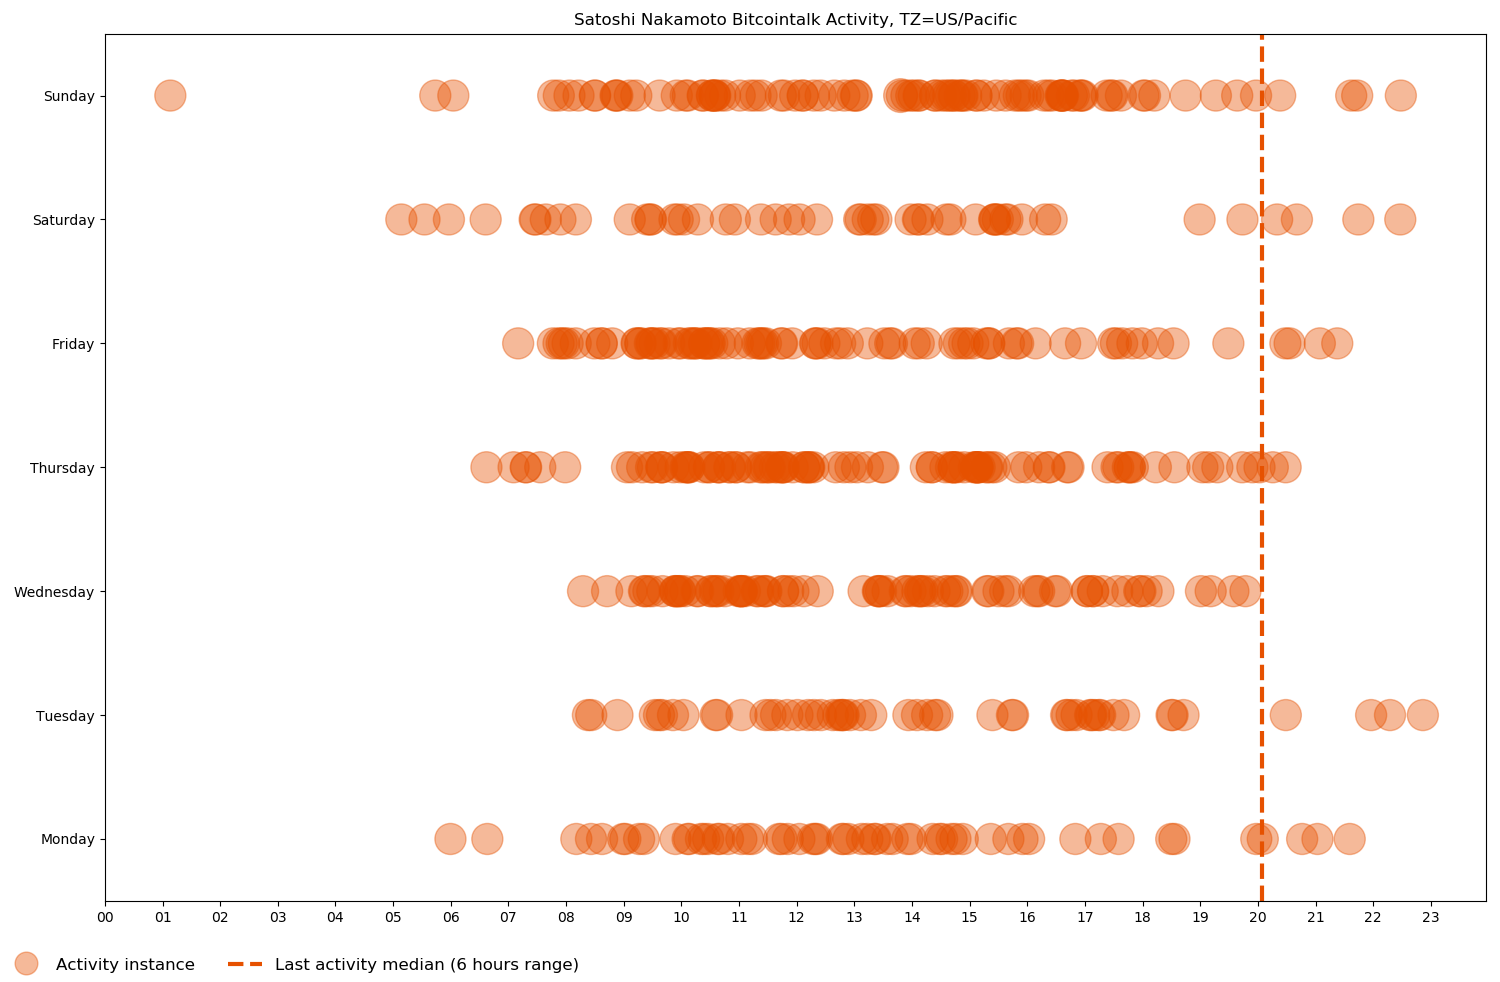 Scatter chart of Satoshi Nakamoto's Bitcointalk activity, from his first post on November 22, 2009 to his last one on December 12, 2010, based on day of the week and time of day in the US/Pacific time zone.